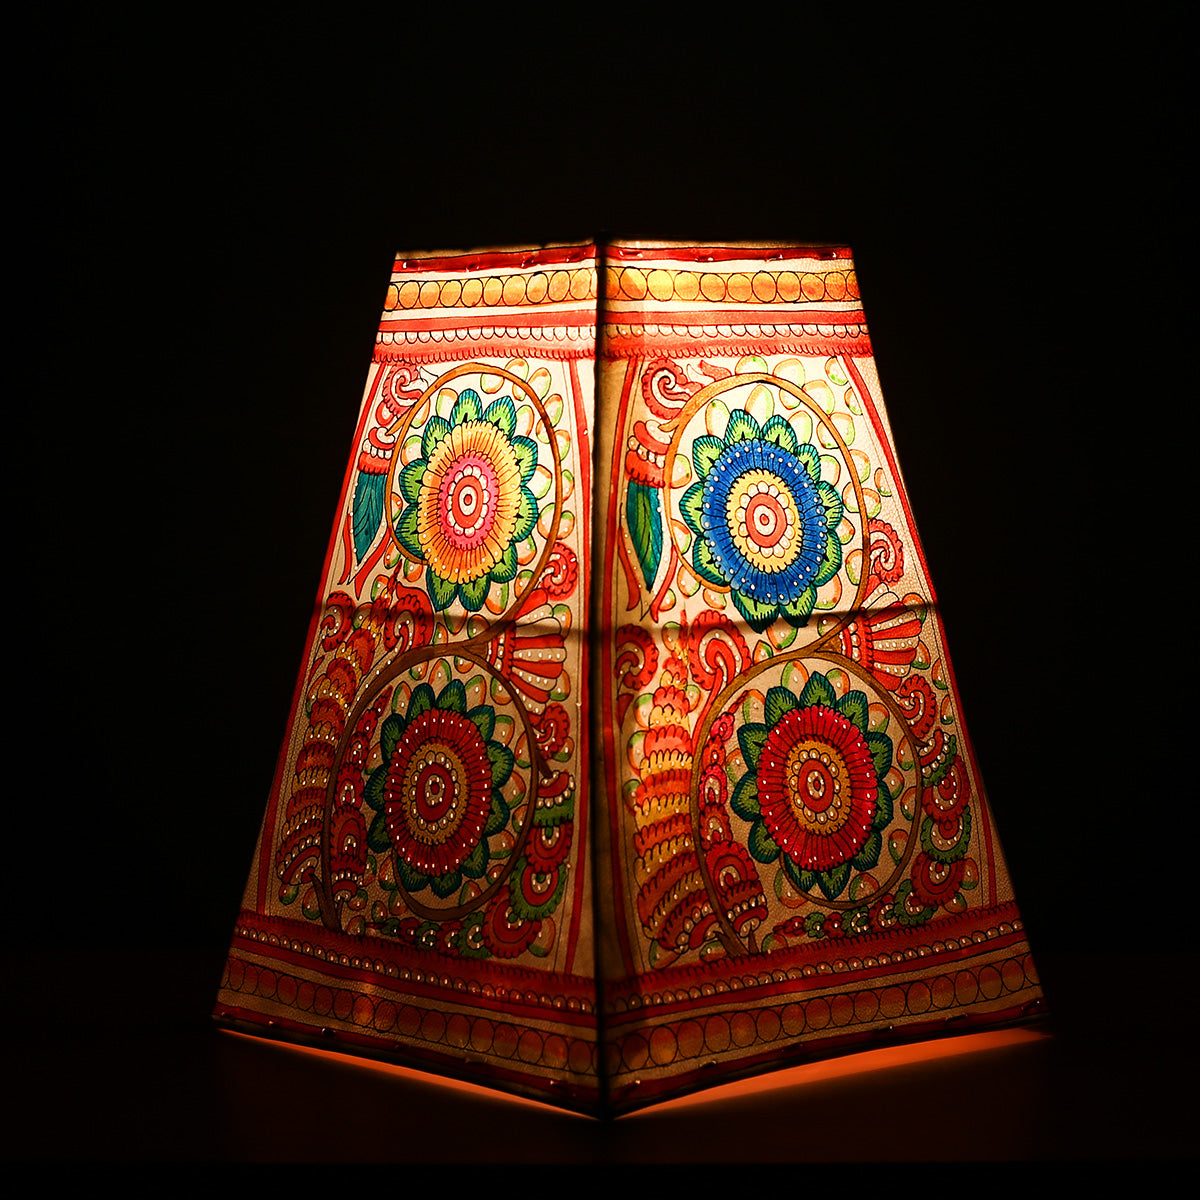 Big Andhra Pradesh Leather Lamp with Coloured Floral Design